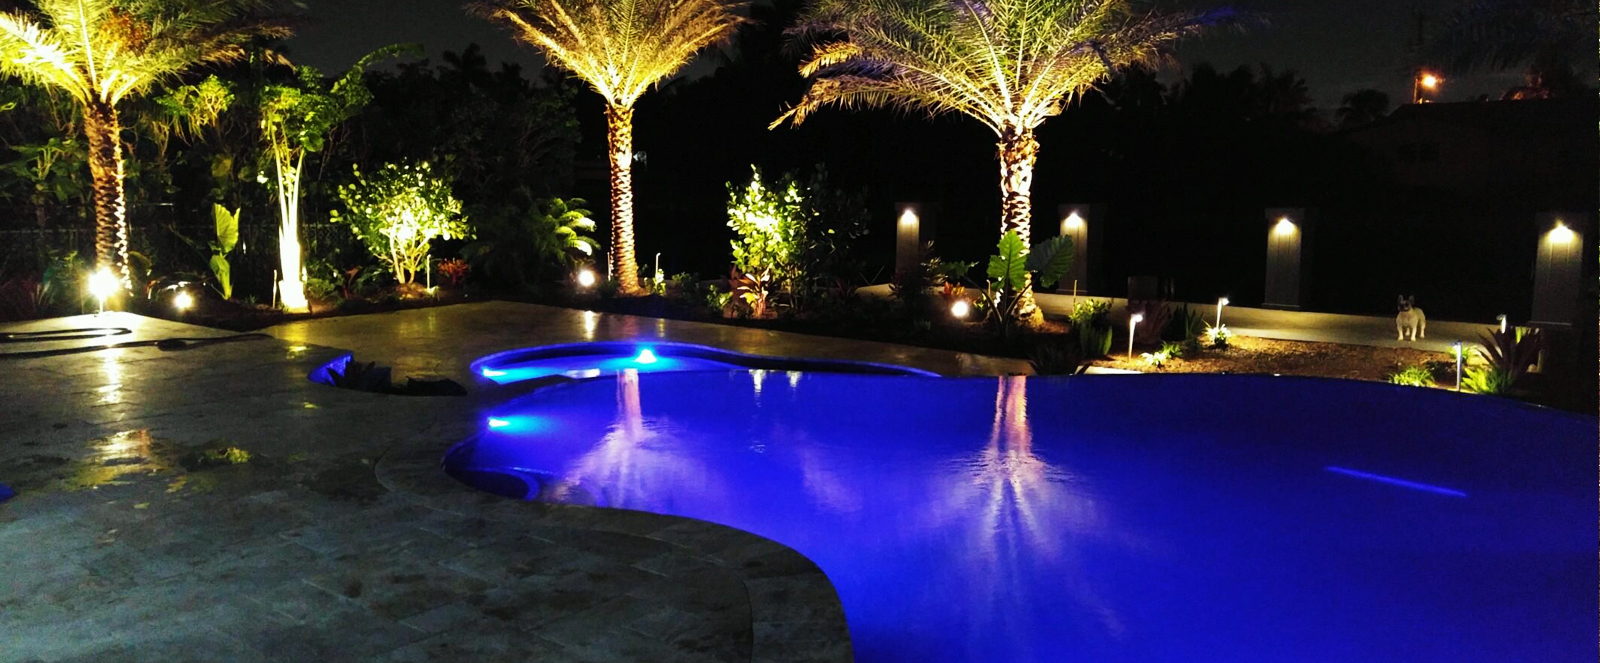 night-time view of a swimming pool with outdoor lighting